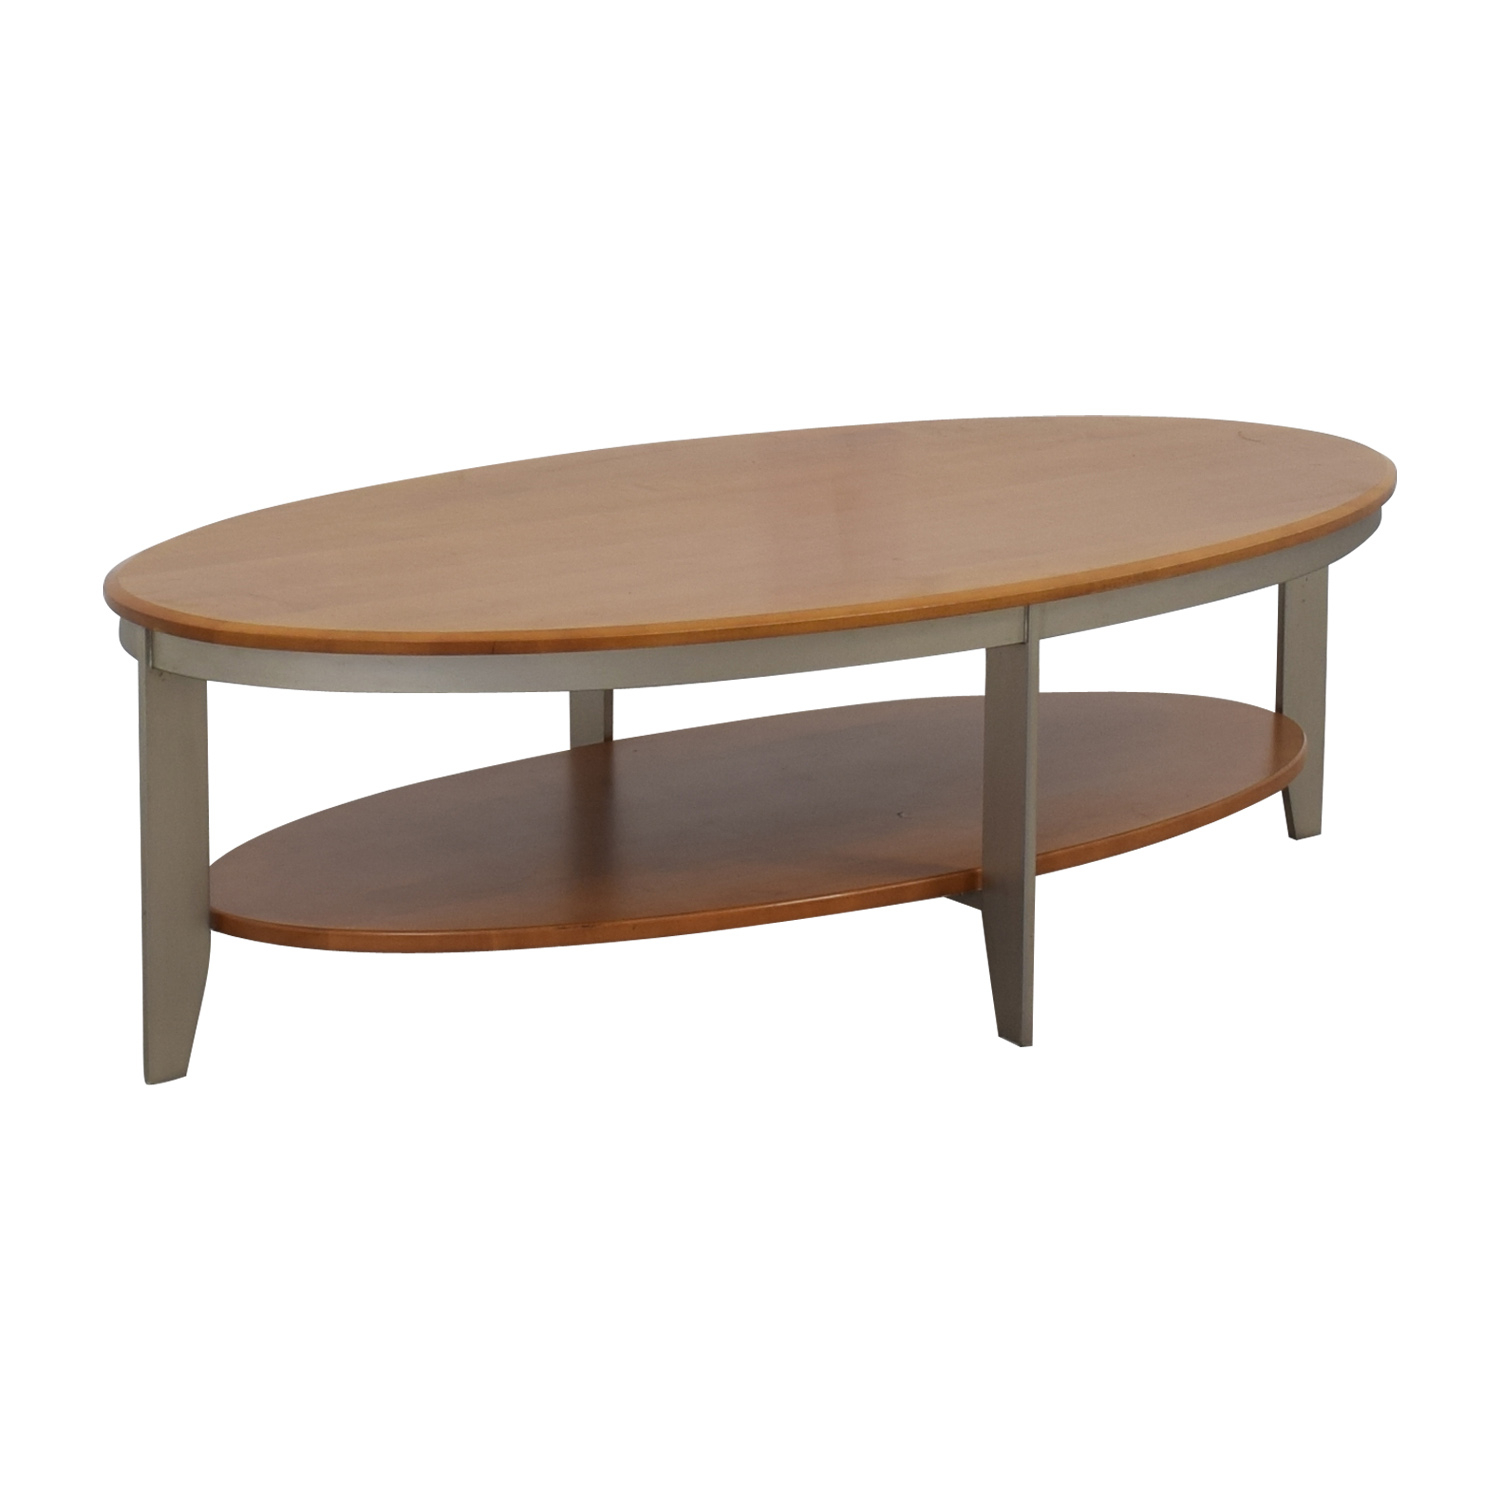 89 Off Ethan Allen Ethan Allen Elements Collection Honey Oval for dimensions 1500 X 1500